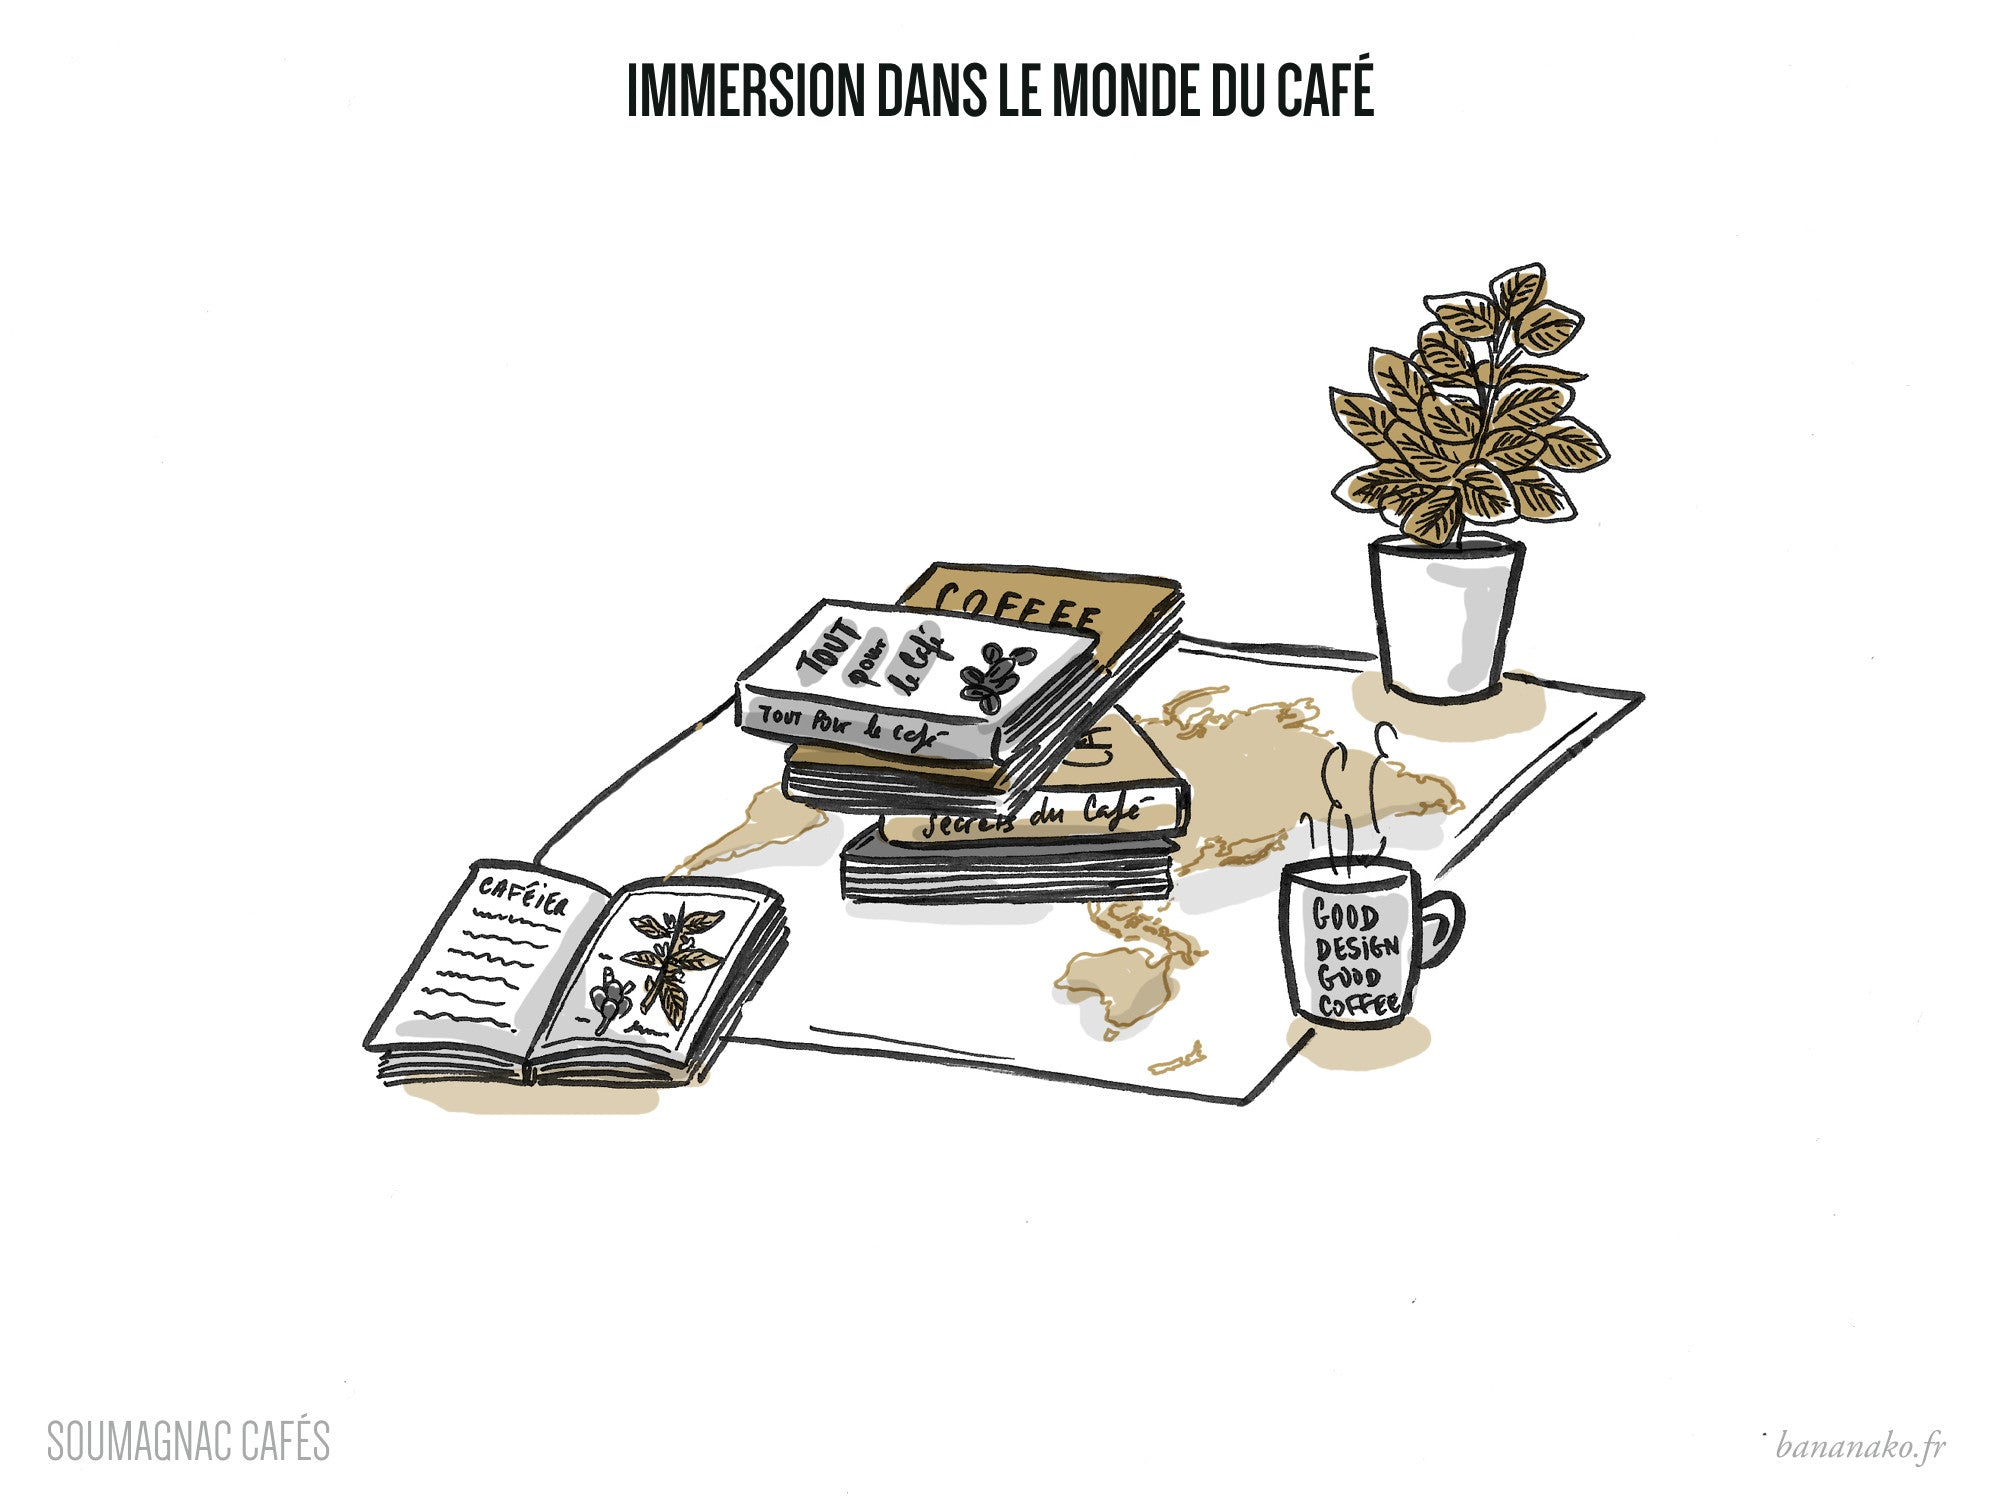 Soumagnac Cafés - Immersion